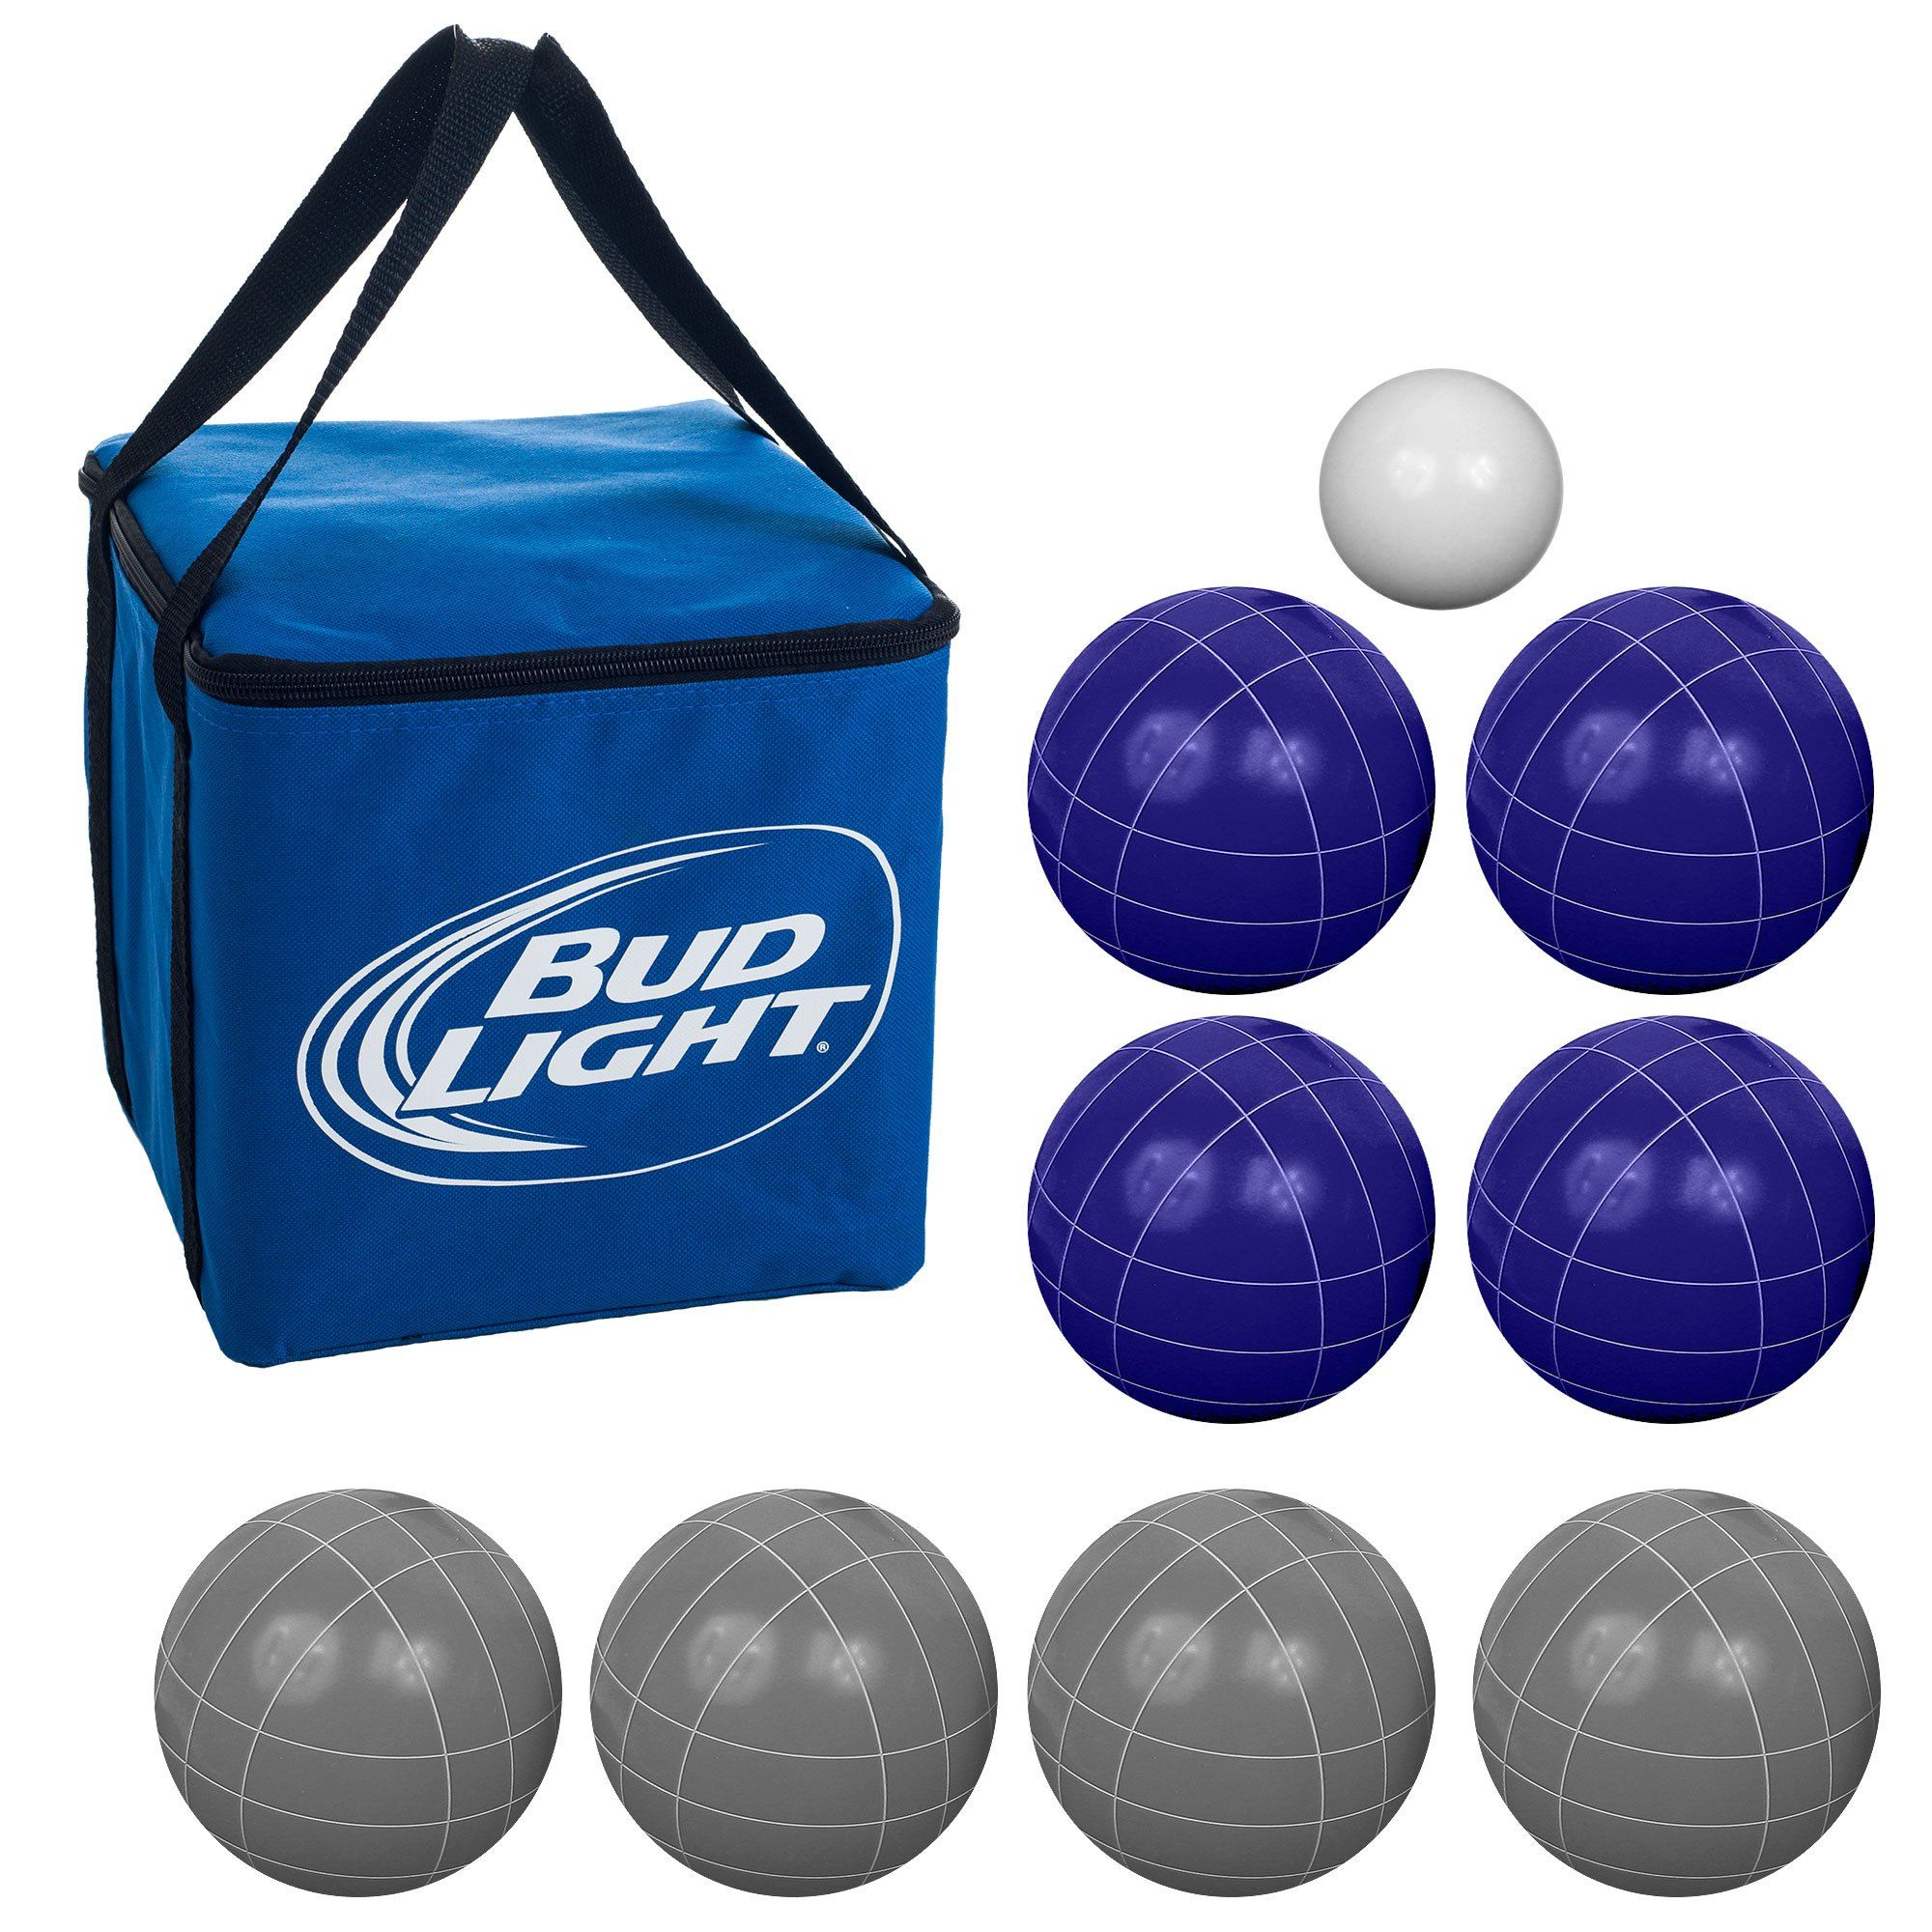 Bud Light Bocce Ball Set Regulation Size with Carrying Case